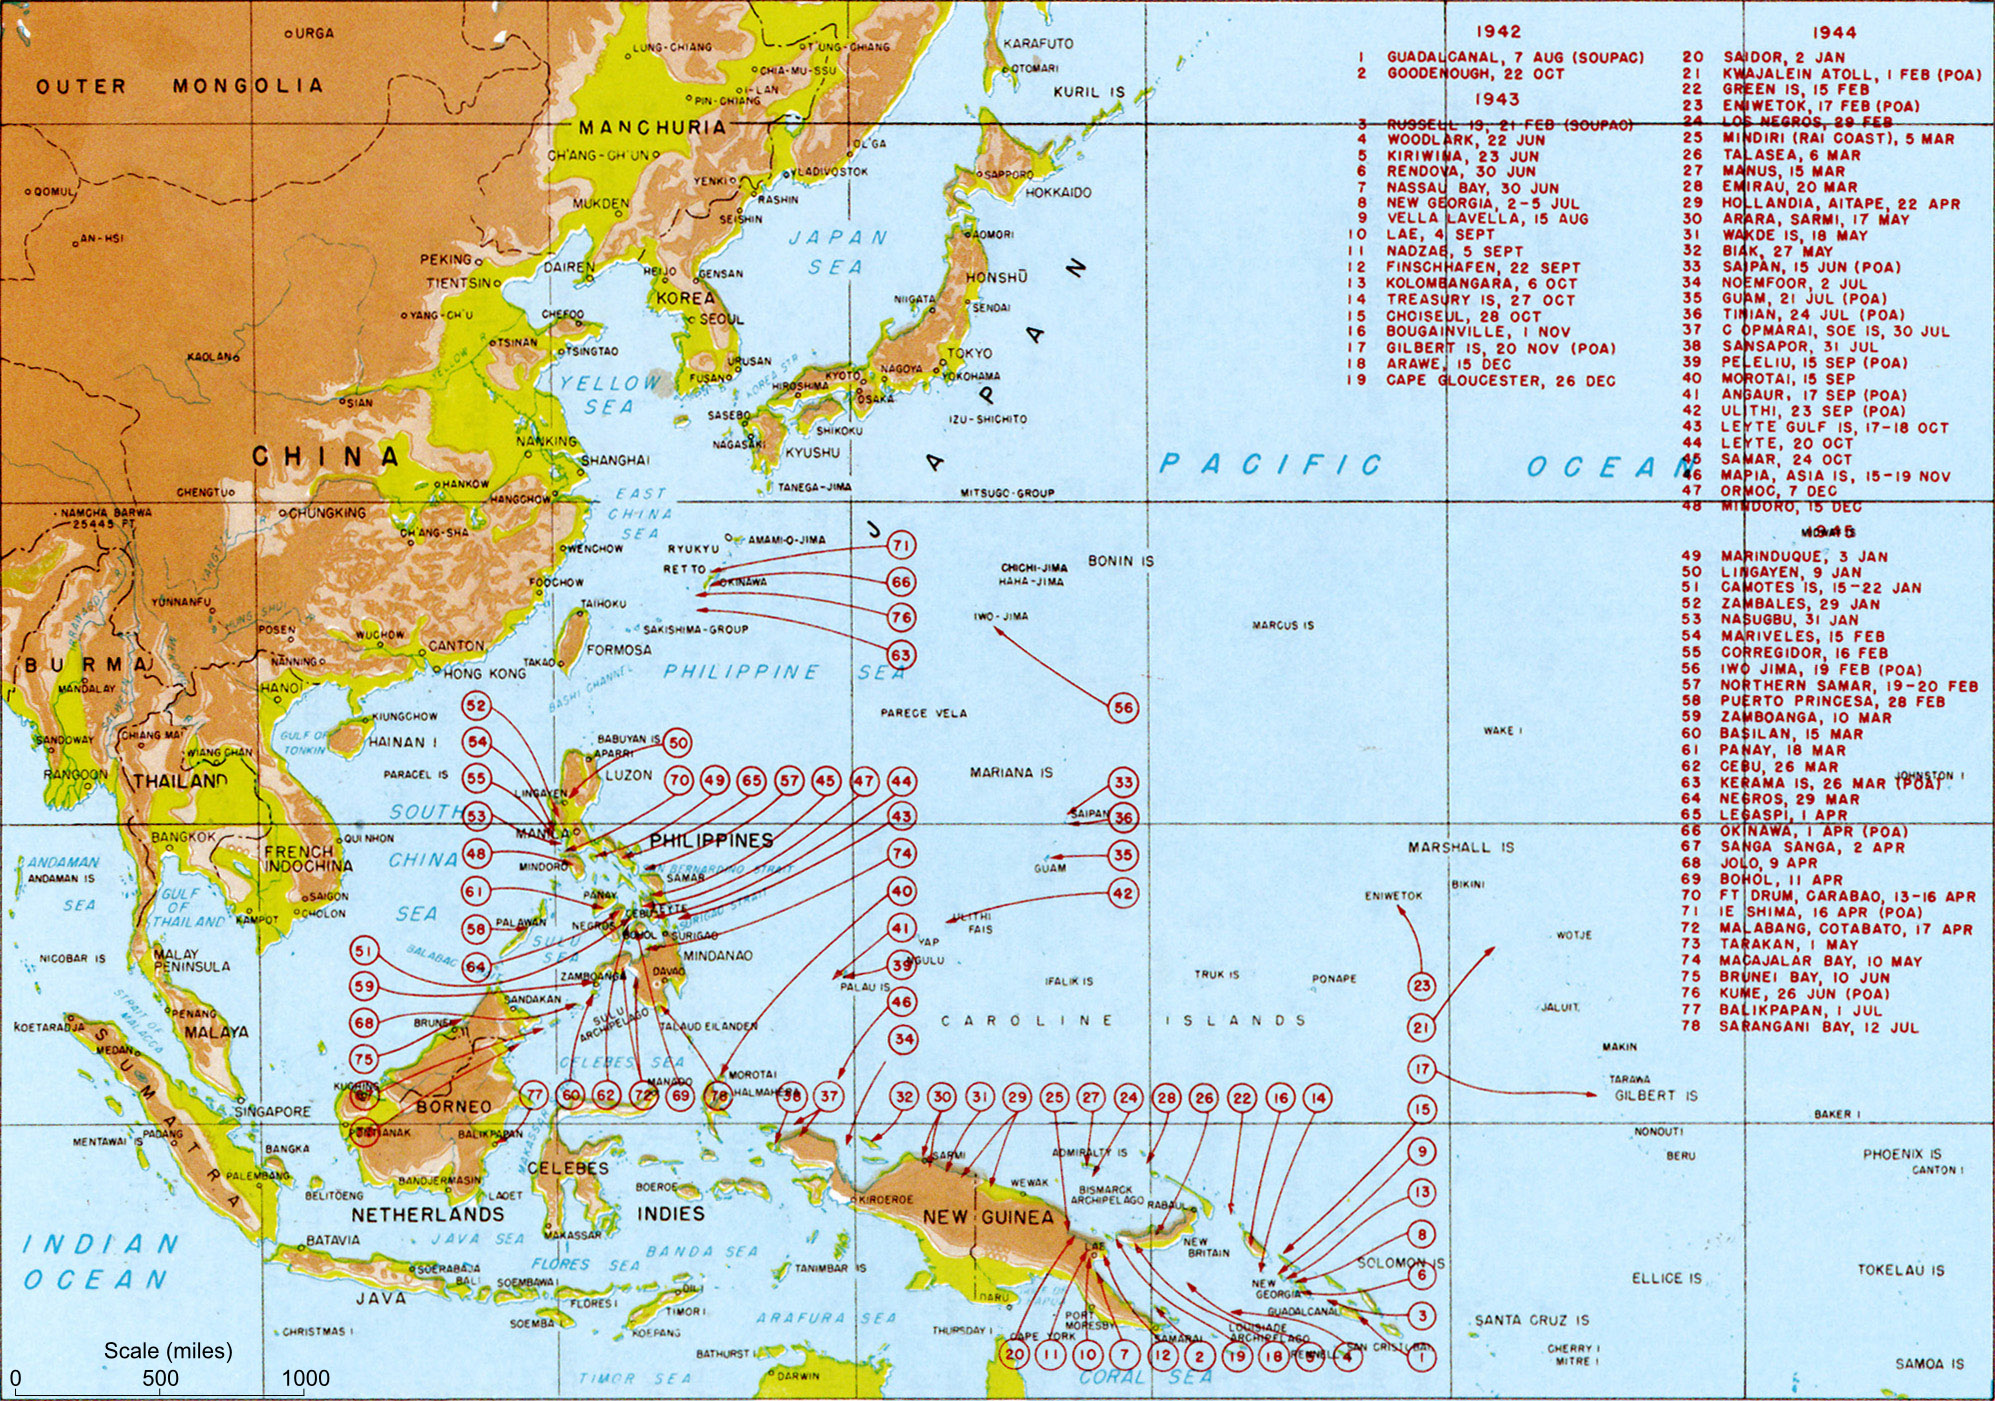 Pacific war wikipedia map indicating us landings during the pacific war gumiabroncs Image collections